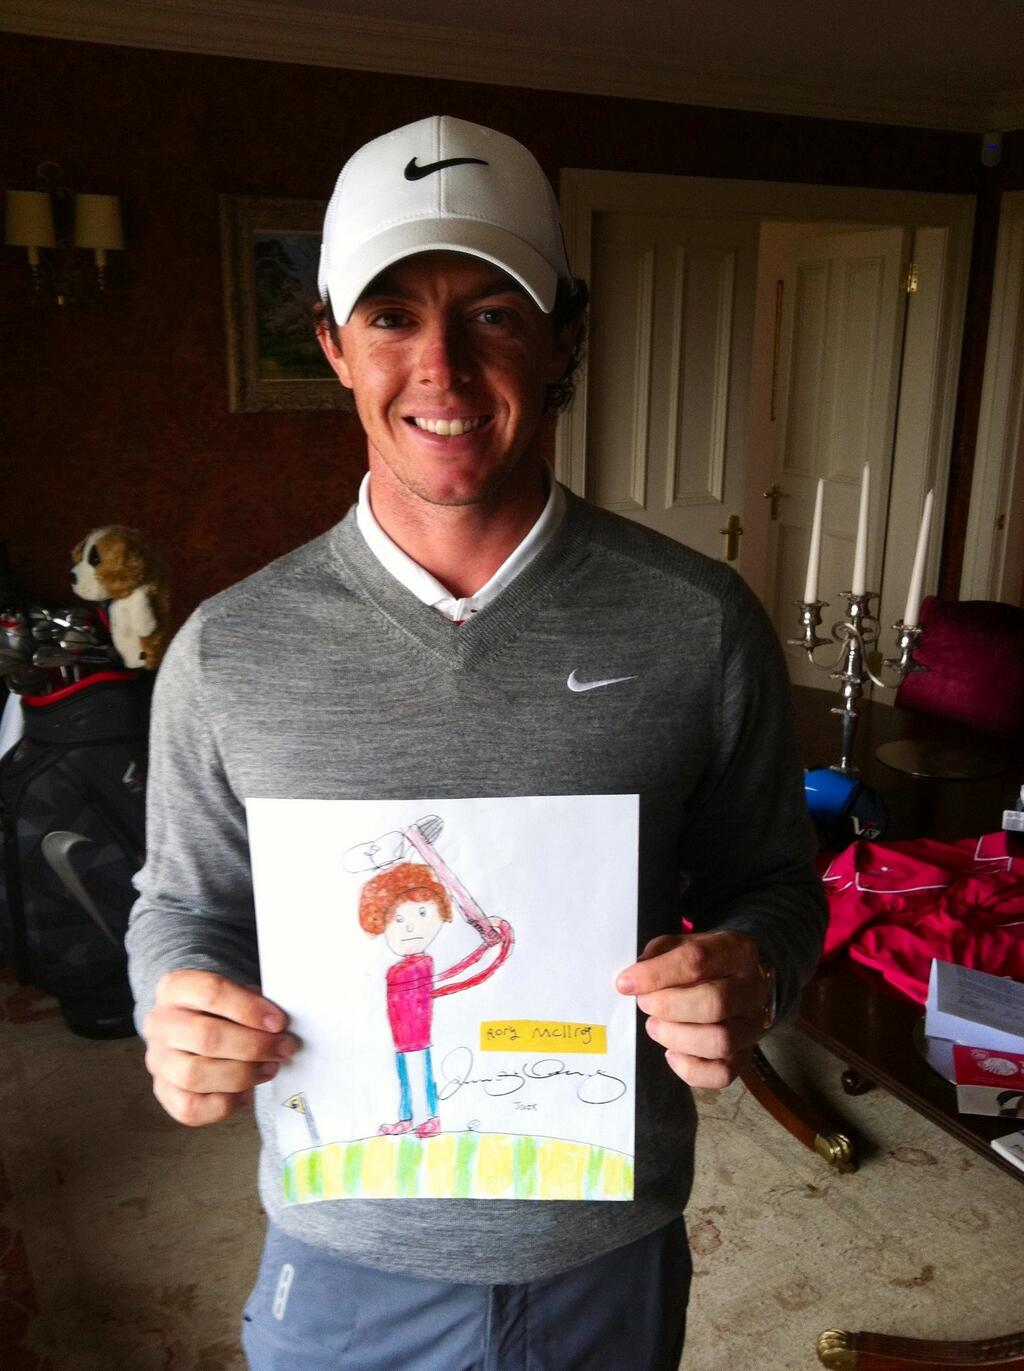 Golfer Rory McIlroy with his signed Jack Draws Anything portrait